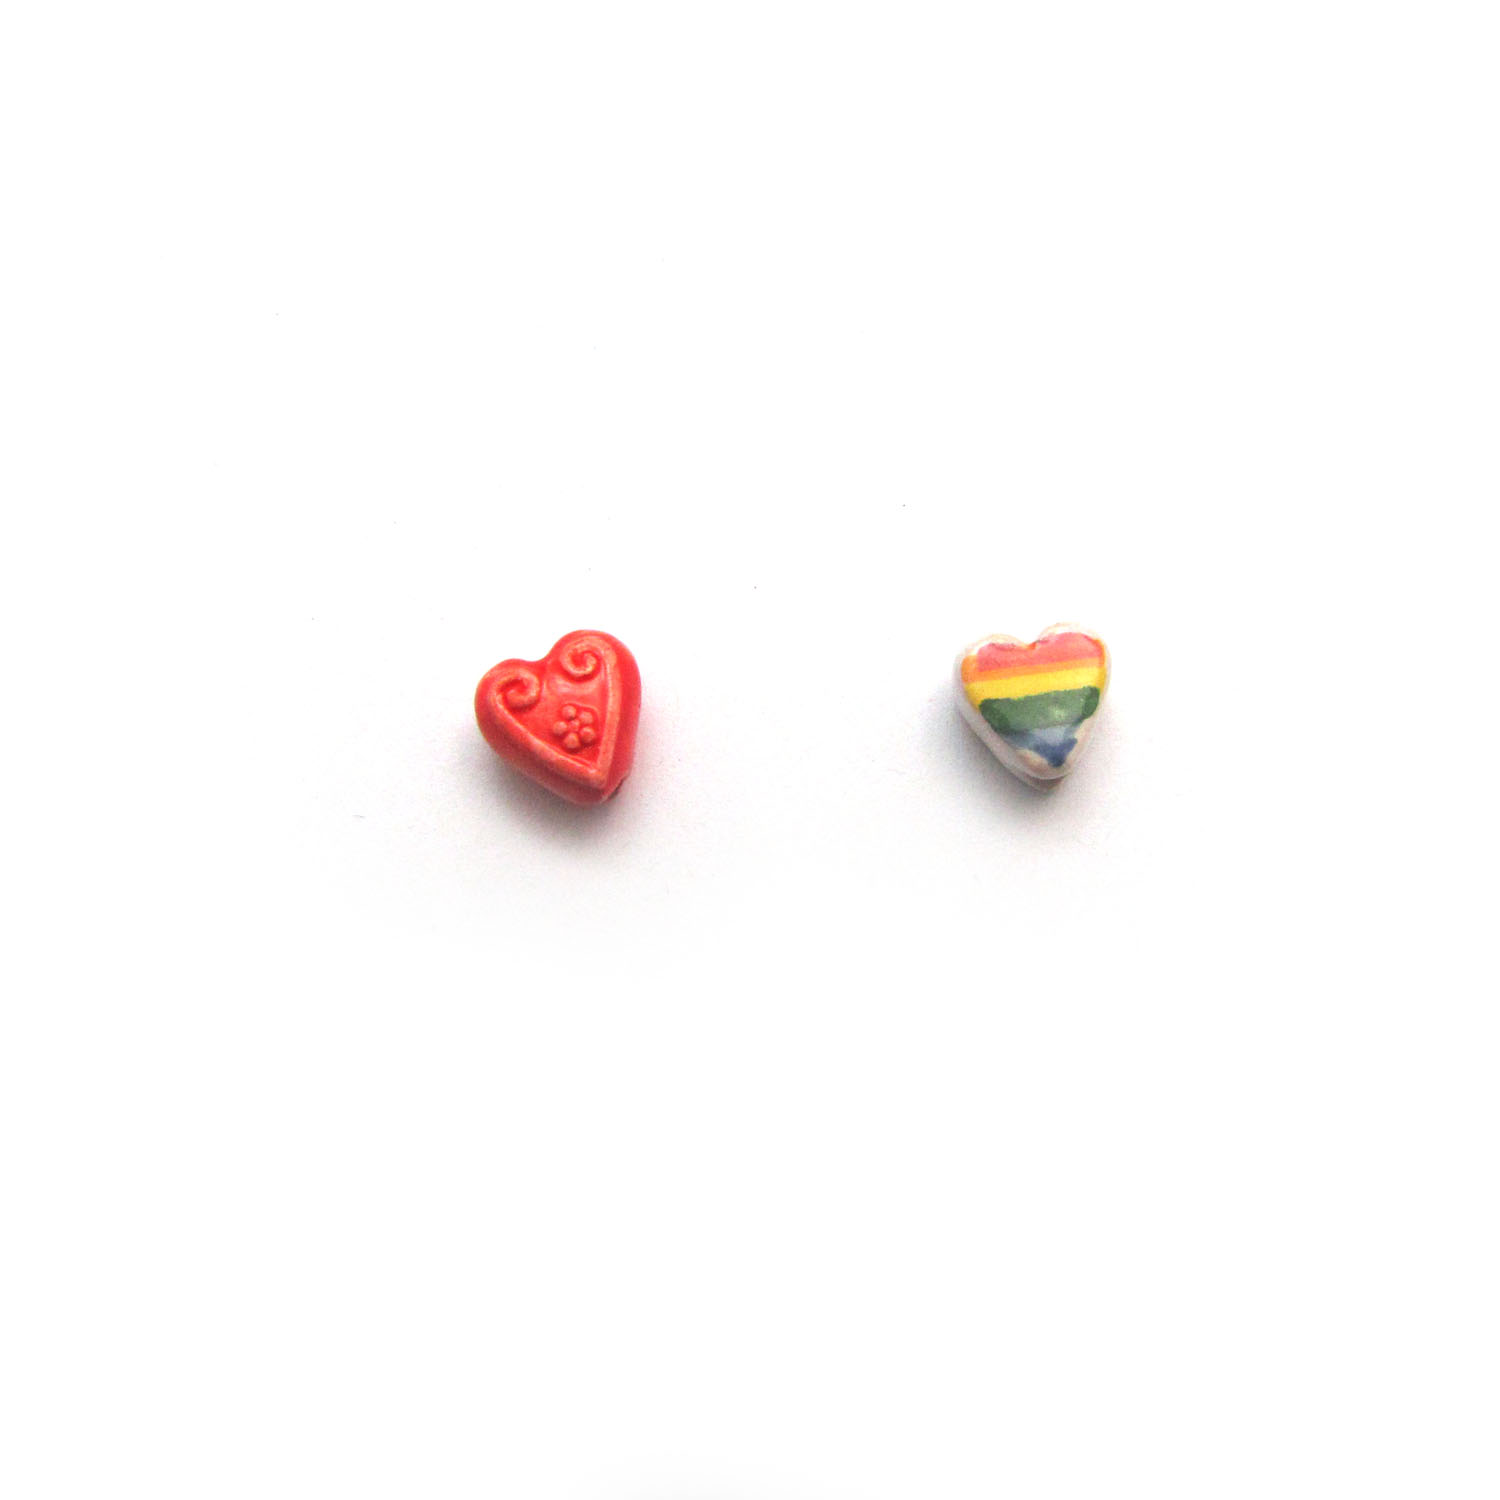 candy heart ceramic beads large and small